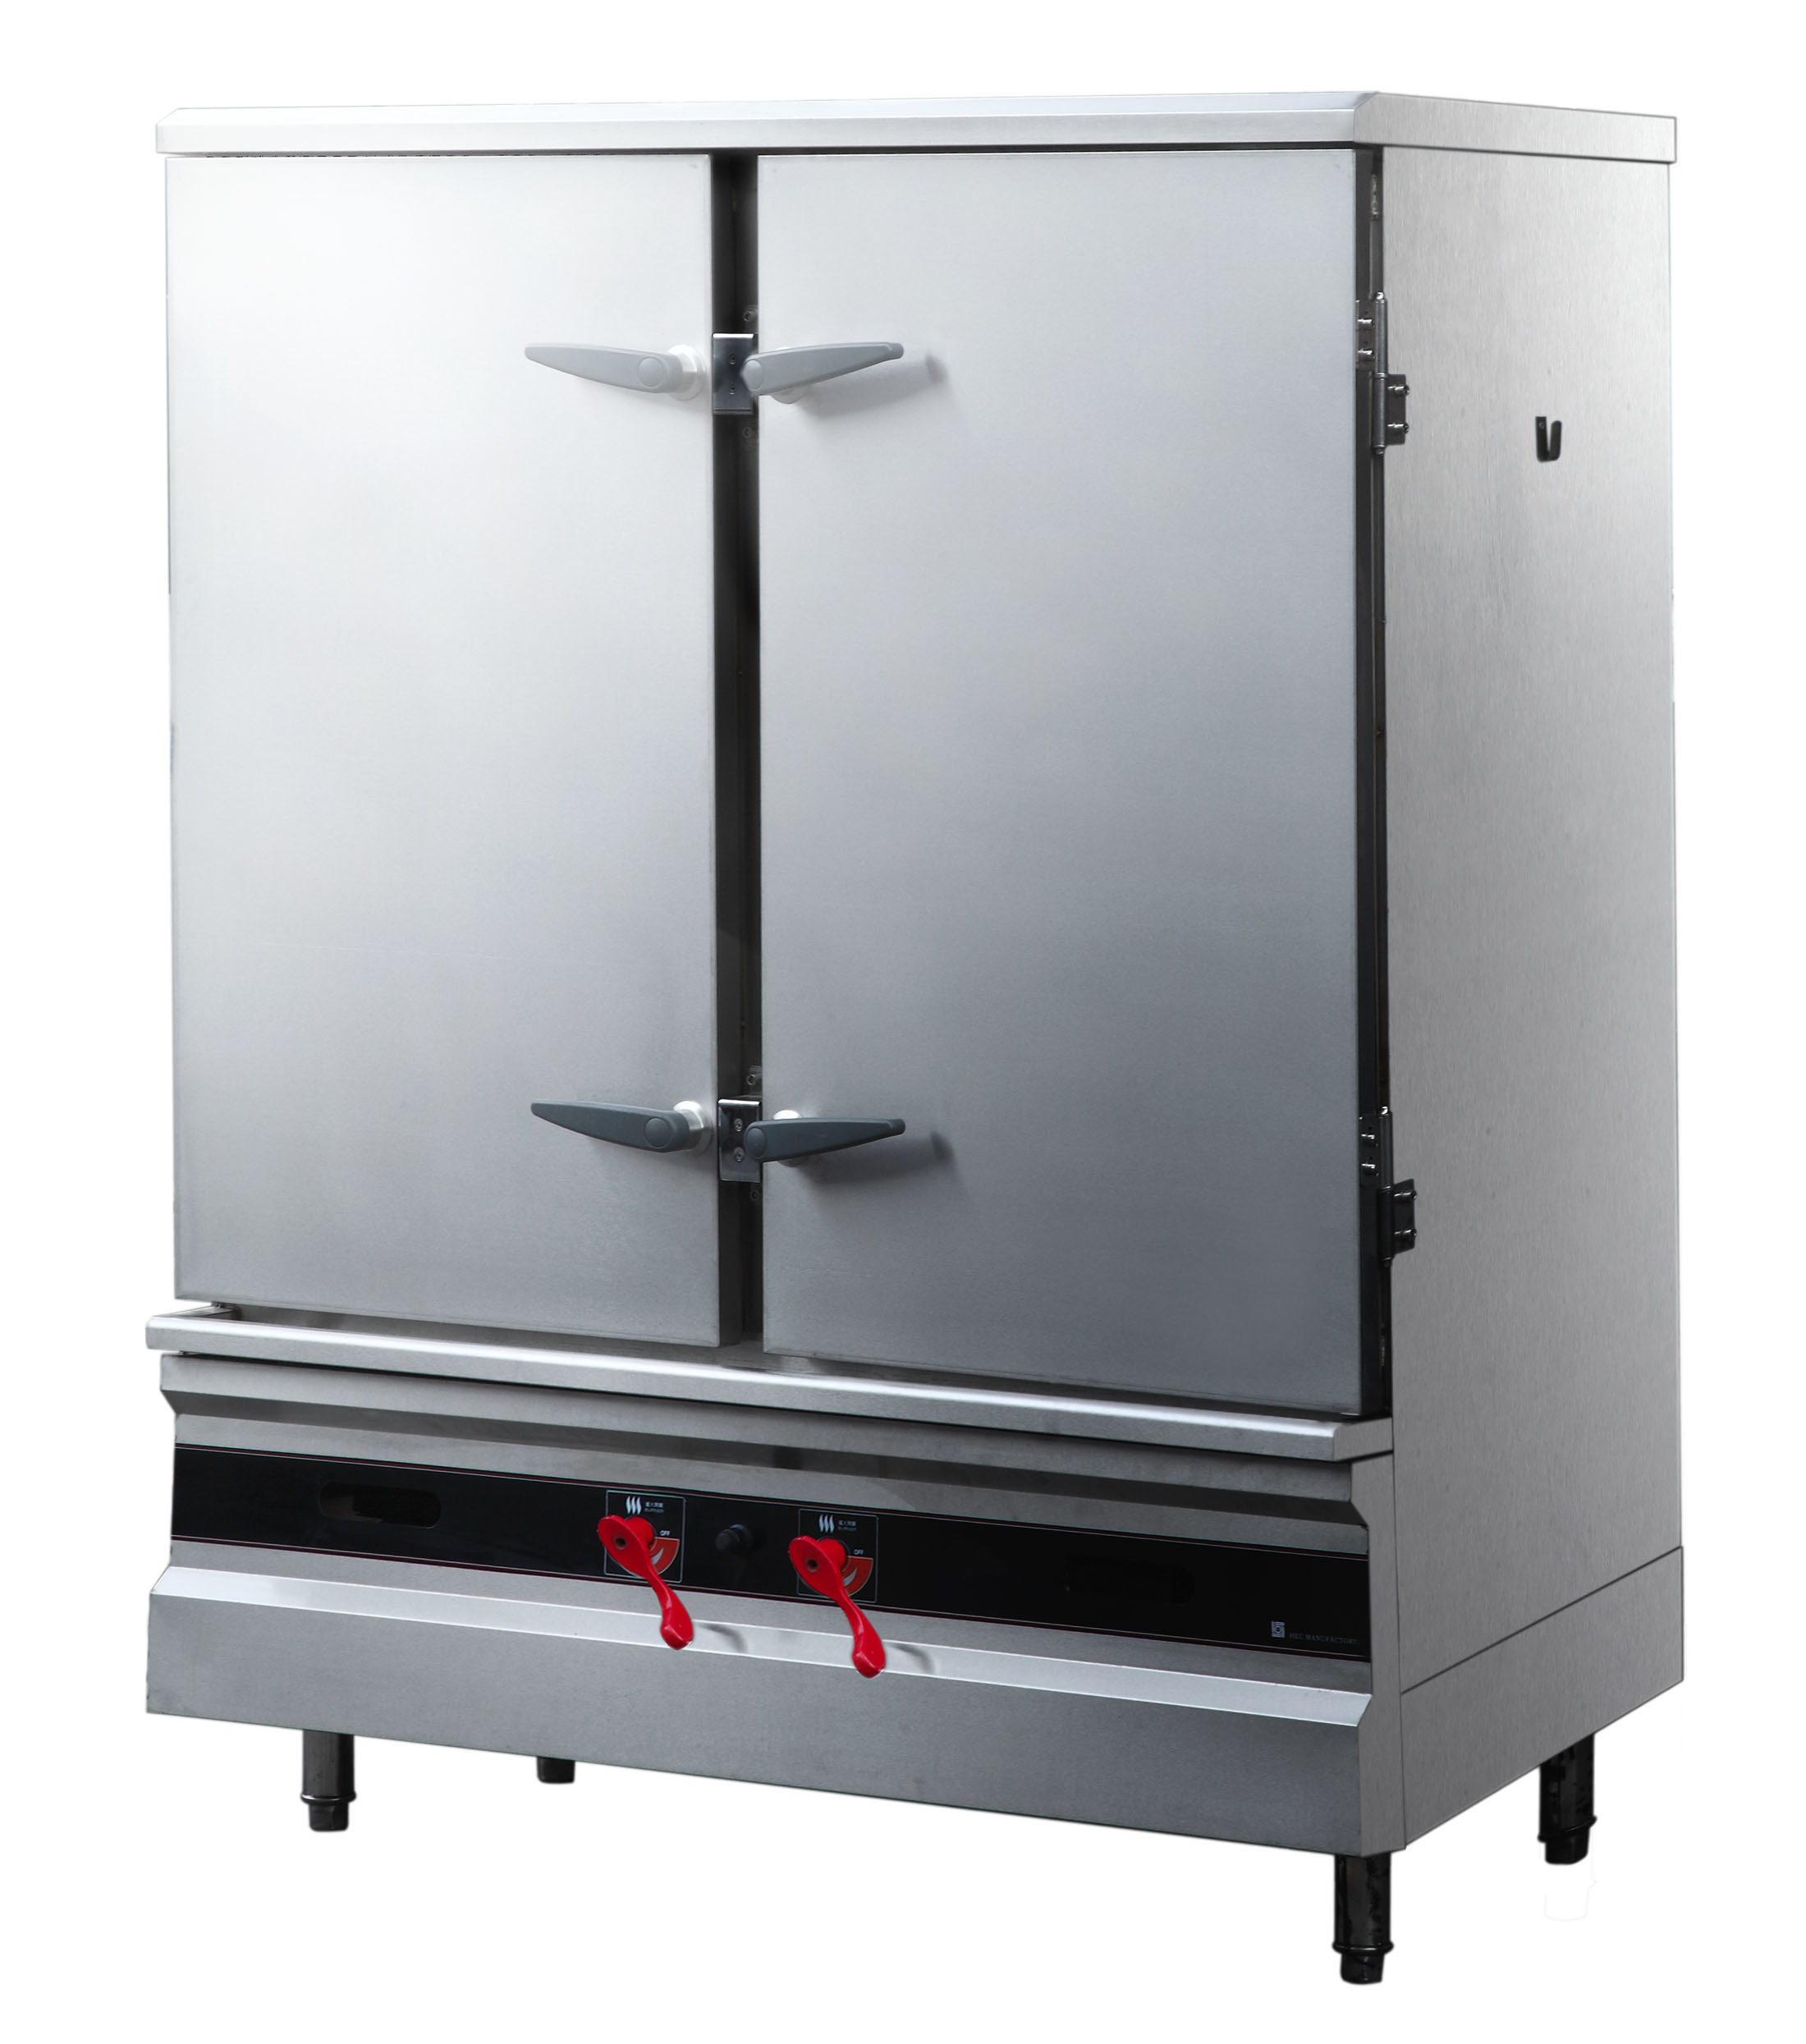 Commercial Butterfly Door Food Steamer (FGNE322RN) ---Gas